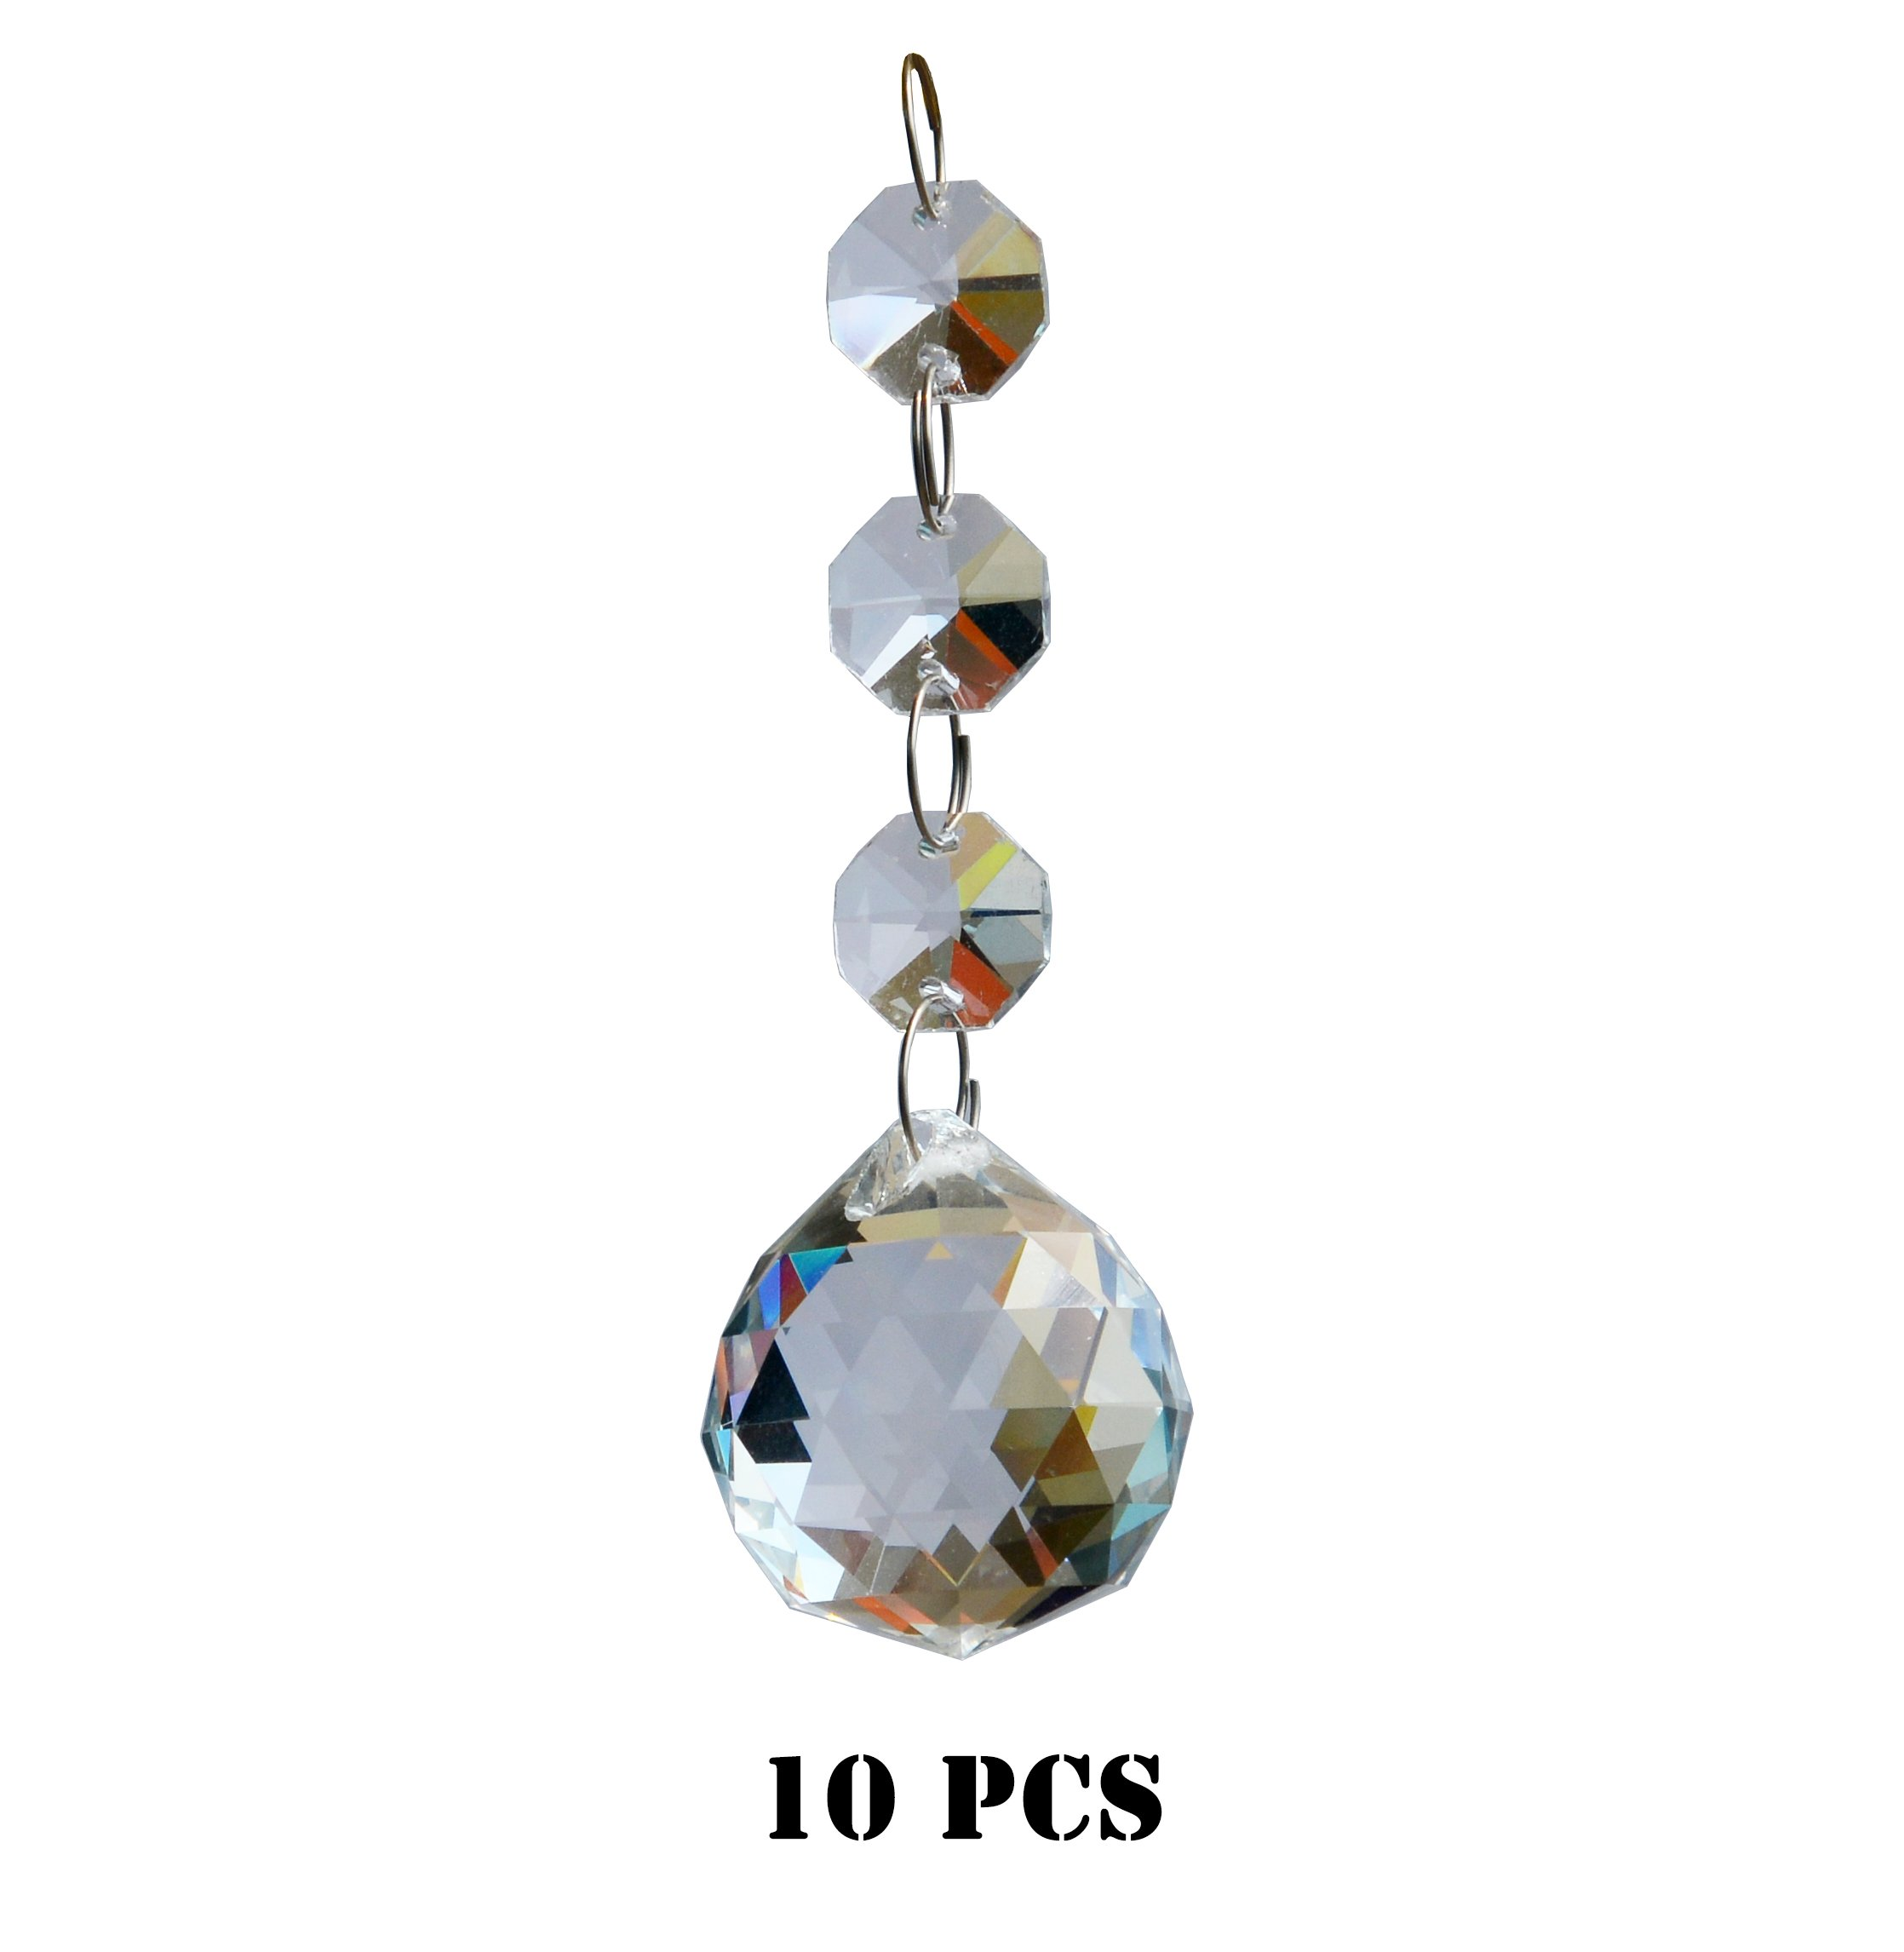 Crystal chandelier parts amazon moooni 10 pcs clear crystal ball chandelier prisms glass pendant beads suncatchers mozeypictures Images